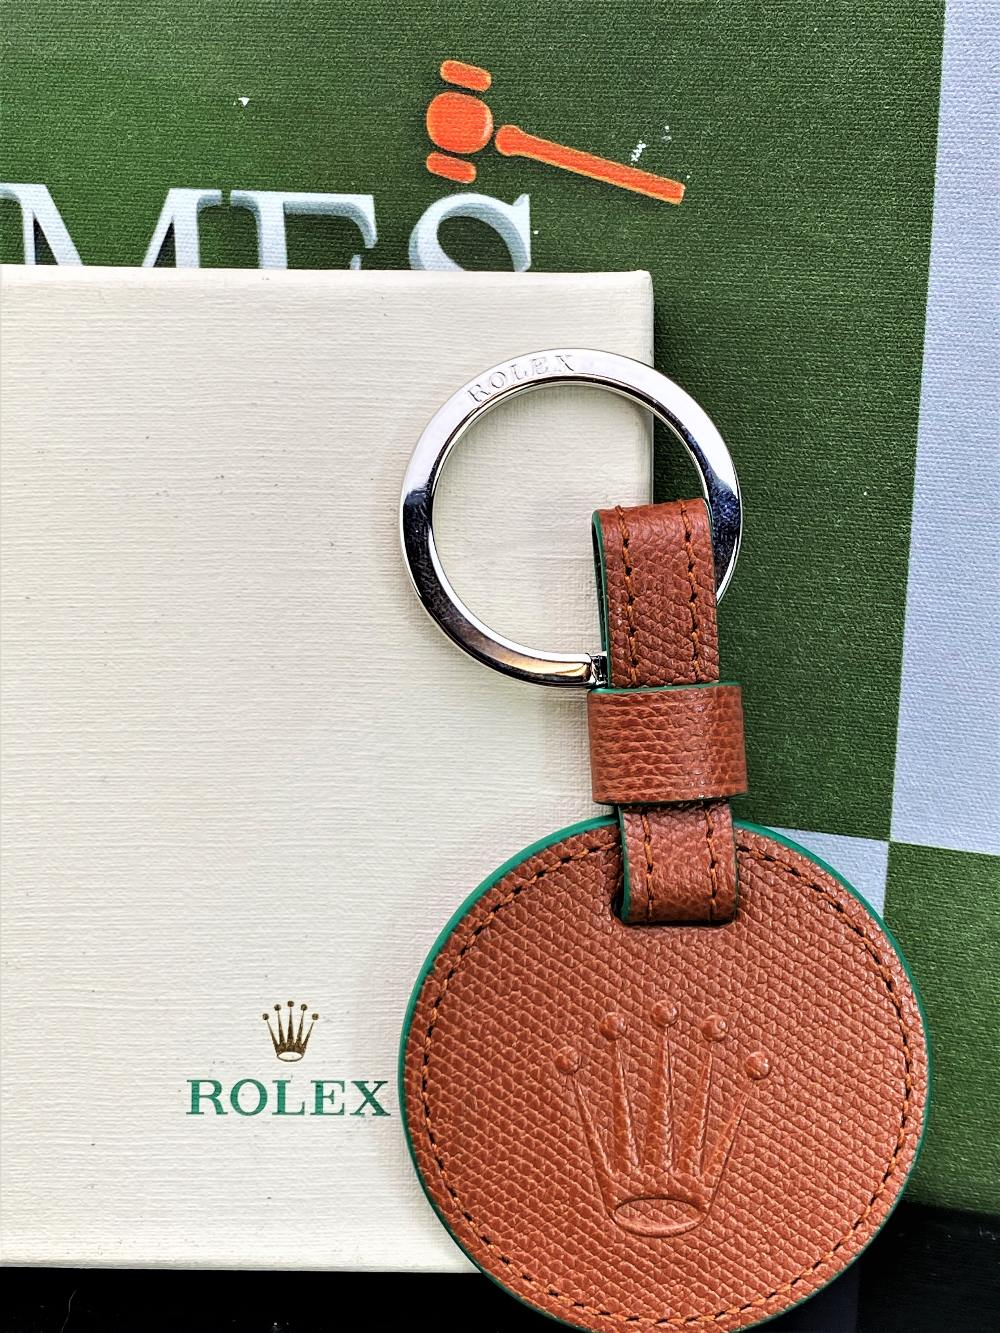 Rolex Official Merchandise Crown Brown Leather Key Ring - Image 2 of 2